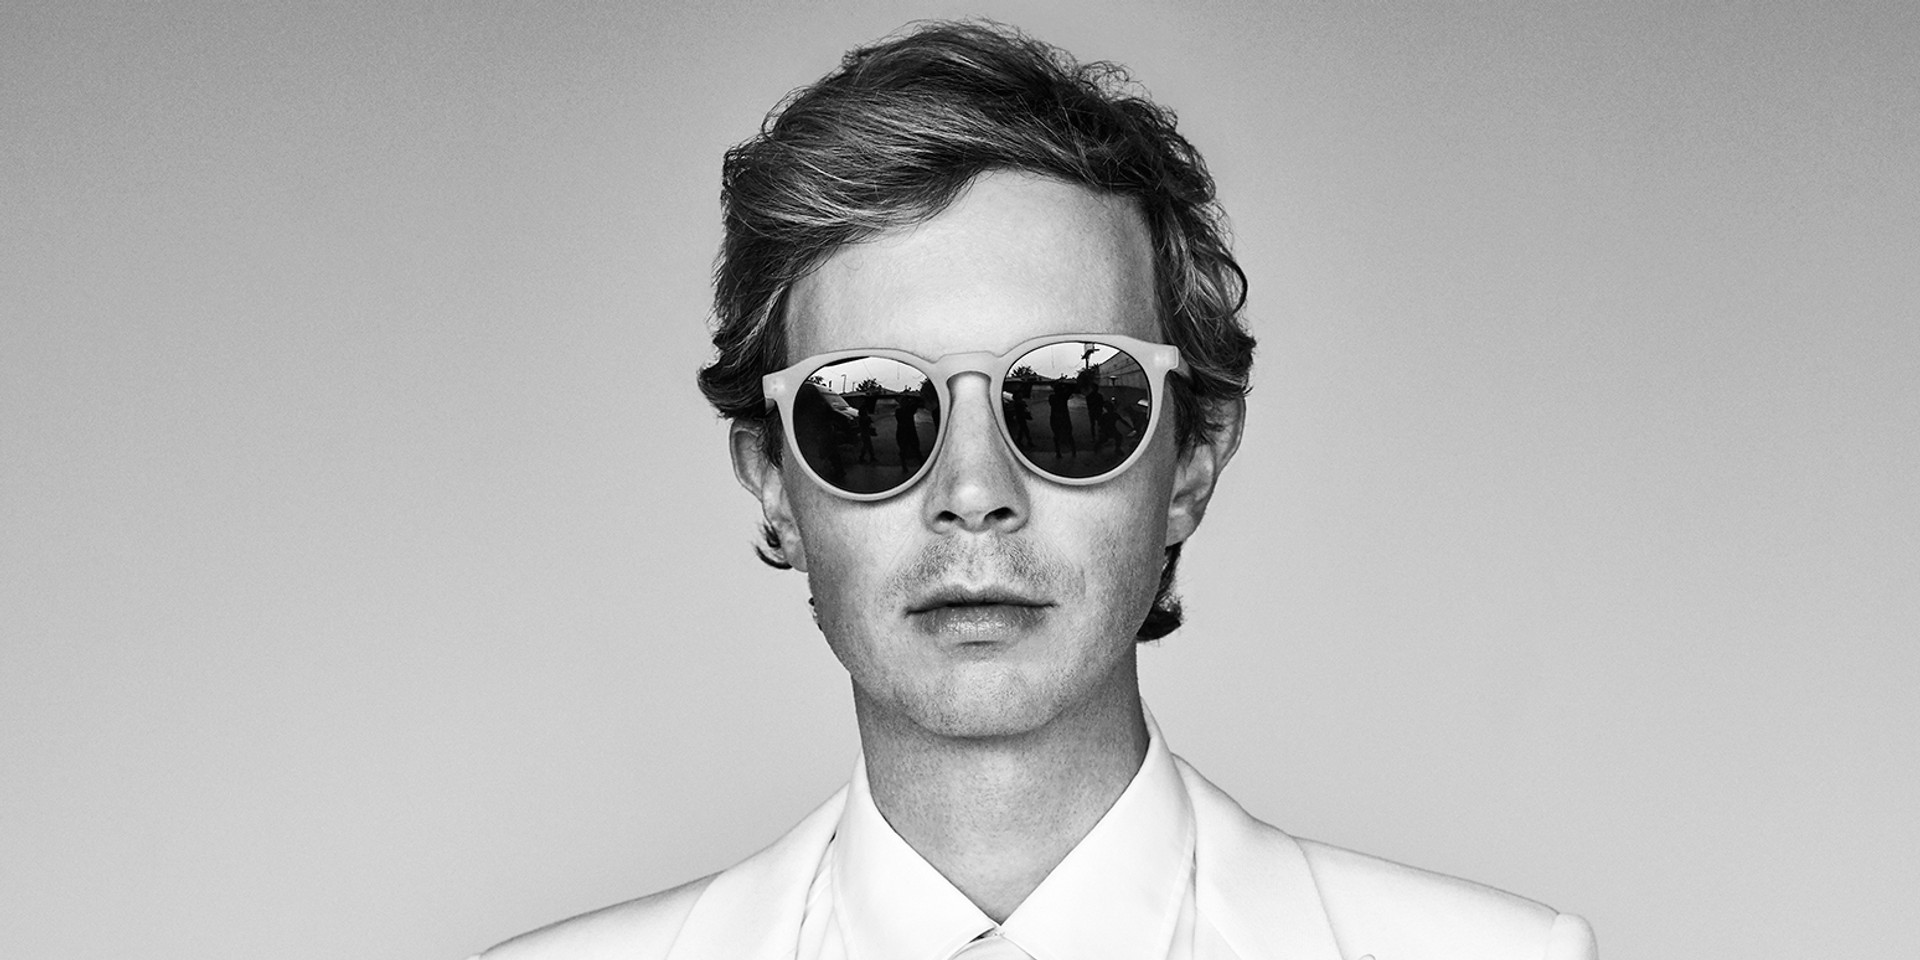 Beck teases upcoming release, Hyperspace, with new artwork